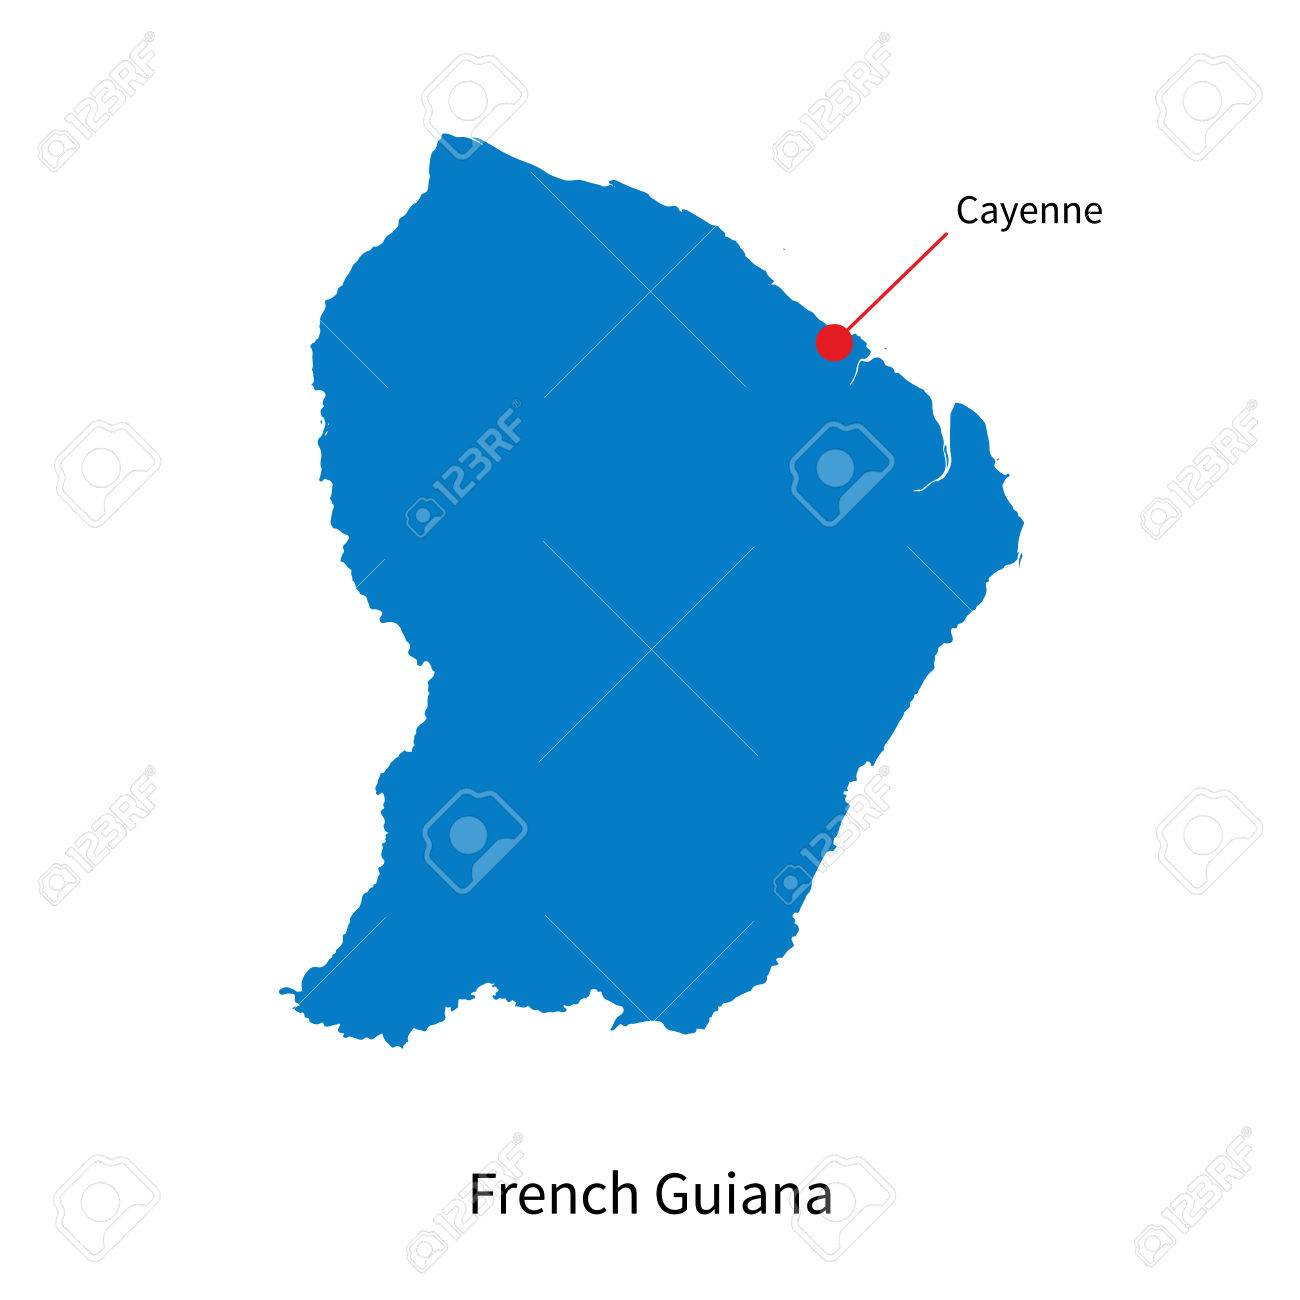 Detailed Map Of French Guiana And Capital City Cayenne Royalty Free